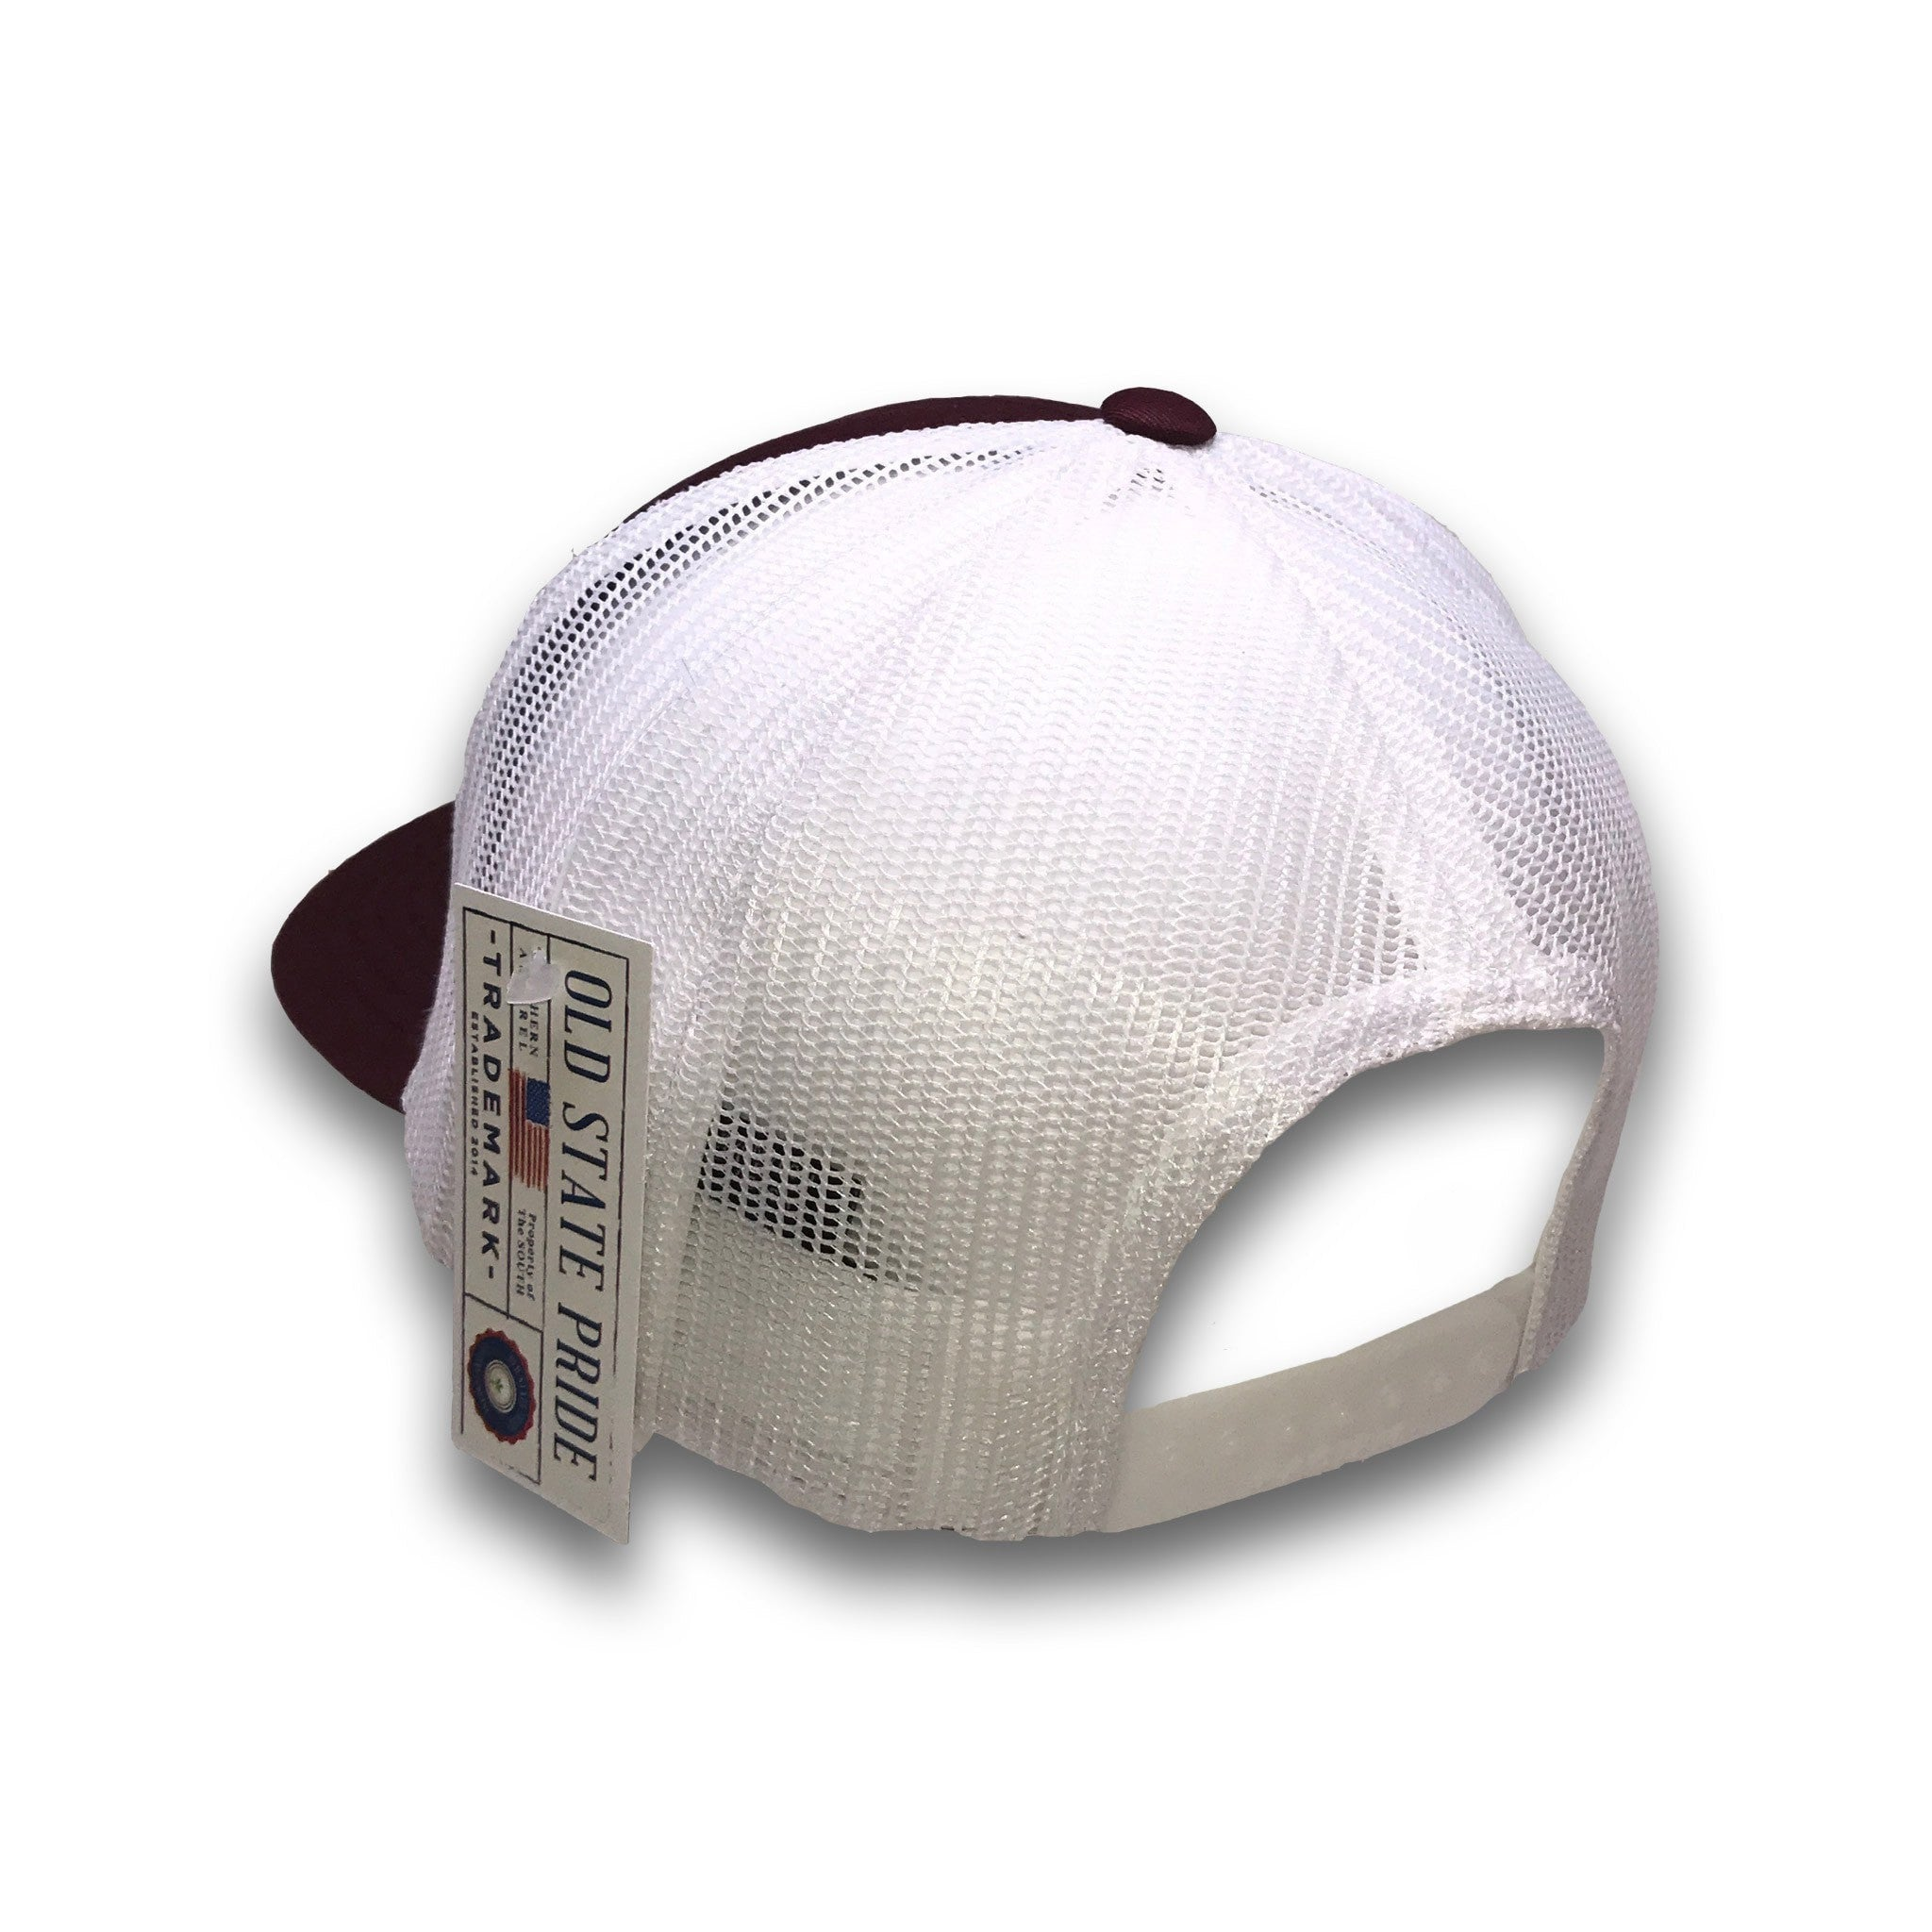 Old State Pride Hats Mississippi -MS State Logo Trucker Hats ... 27b6e664235